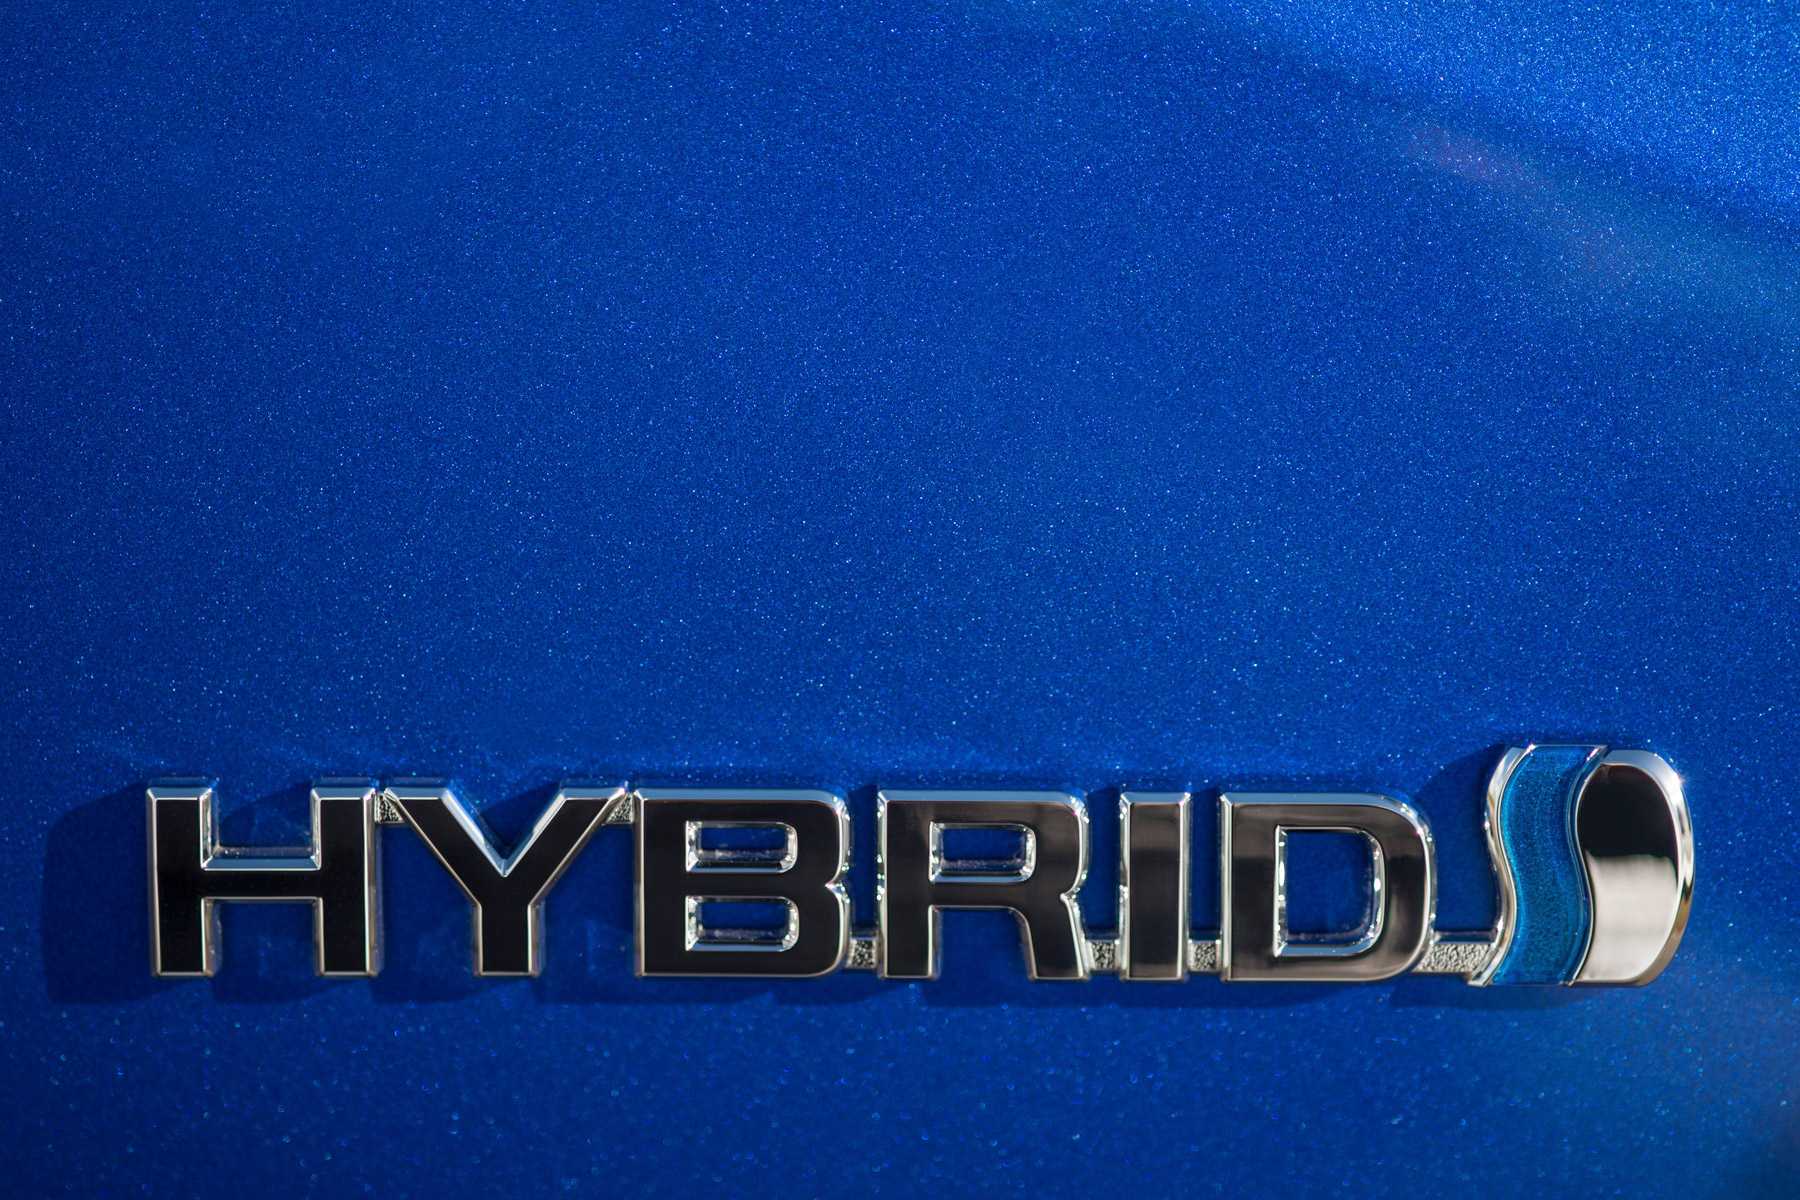 75% of sales will be the hybrid